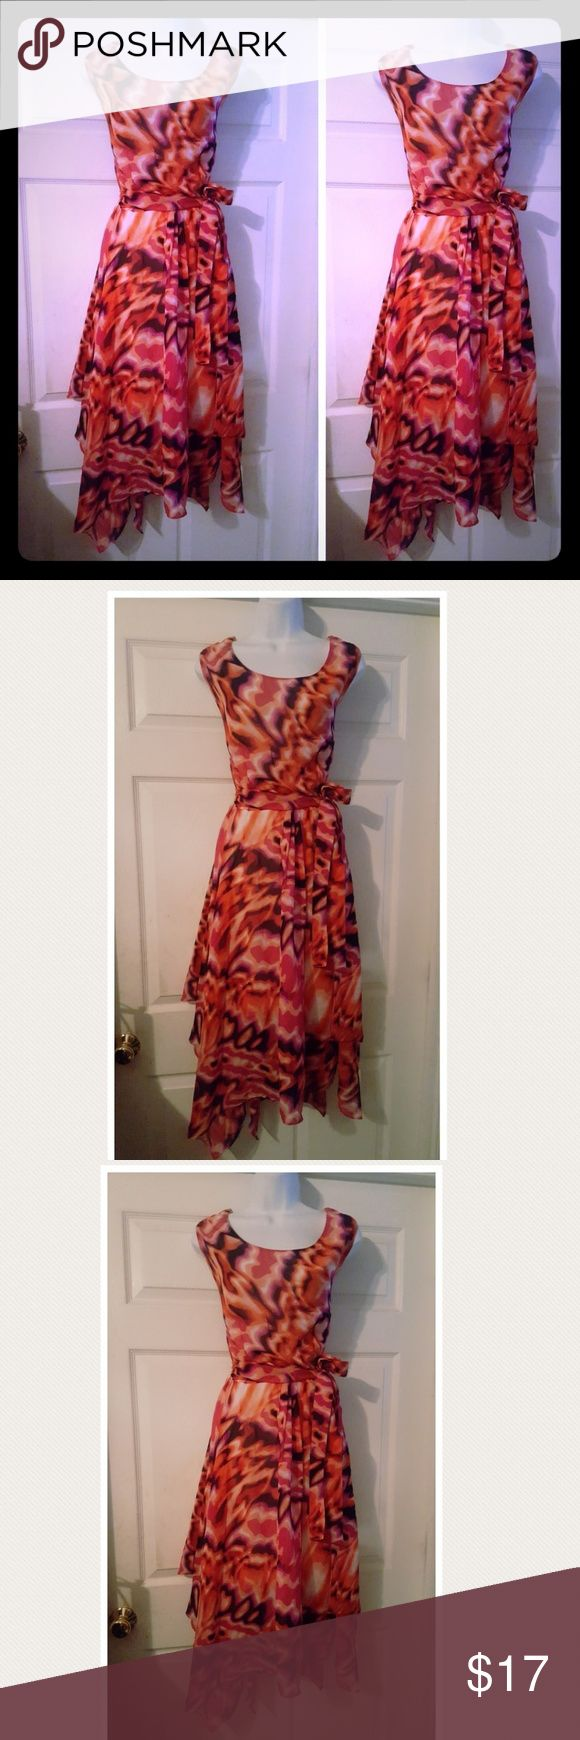 Beautiful orange ombre print handkerchief dress Beautiful orange ombre and white  print handkerchief dress with a flowy handkerchief hemline and a tie belt. Dress is sleeveless with a high round neckline. Dress is in excellent condition jennifer lauren plus Dresses